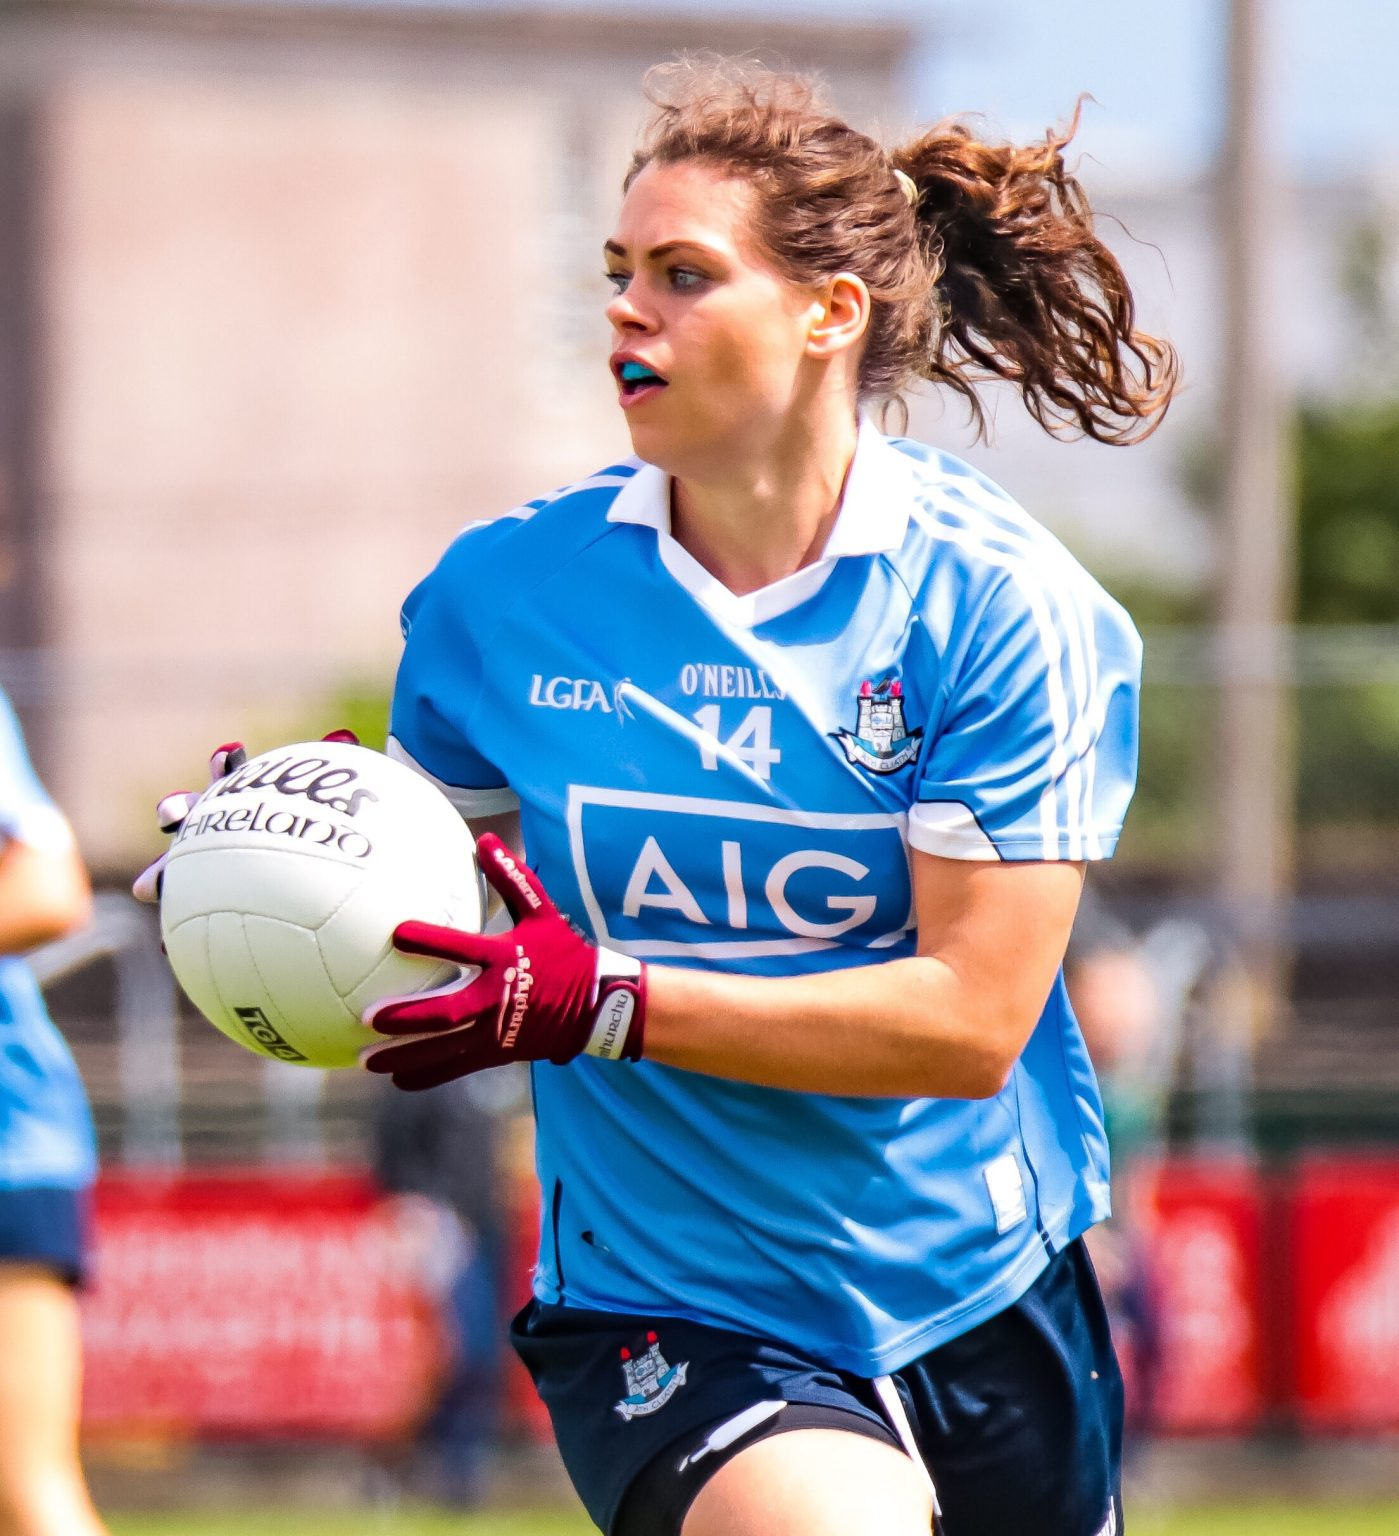 A dublin Ladies footballer in a sky blue jersey looks ahead to see where to pass the ball